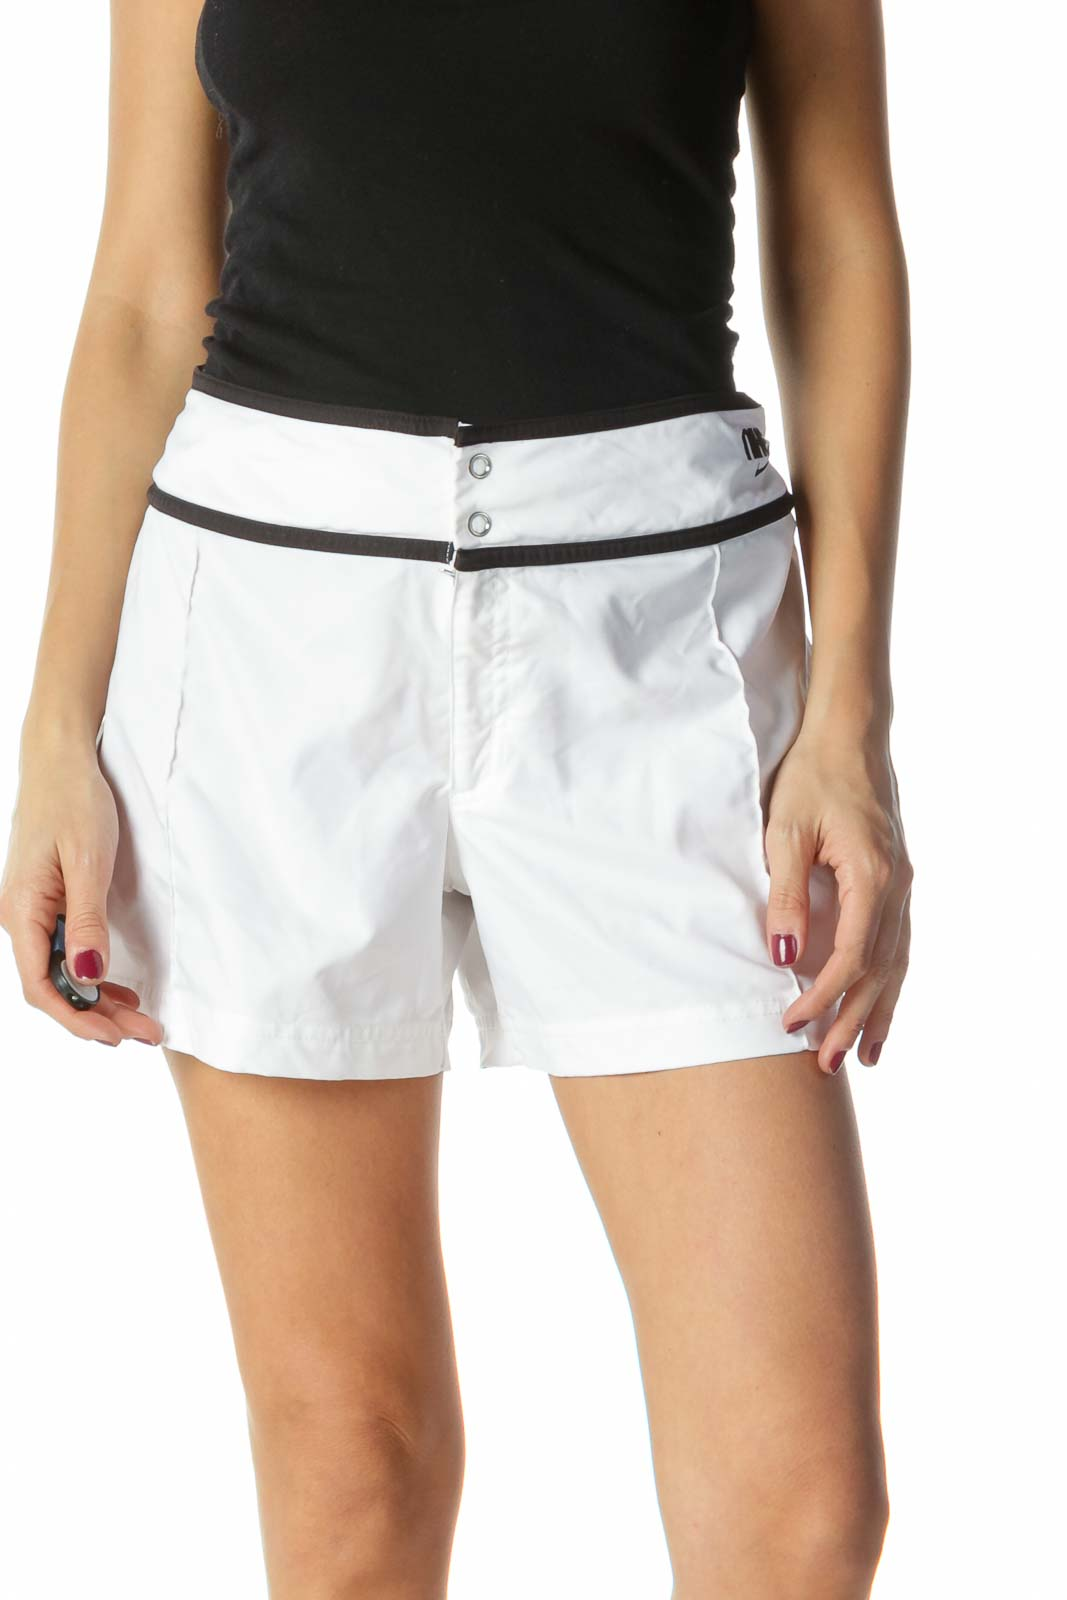 Black and White Sports Shorts